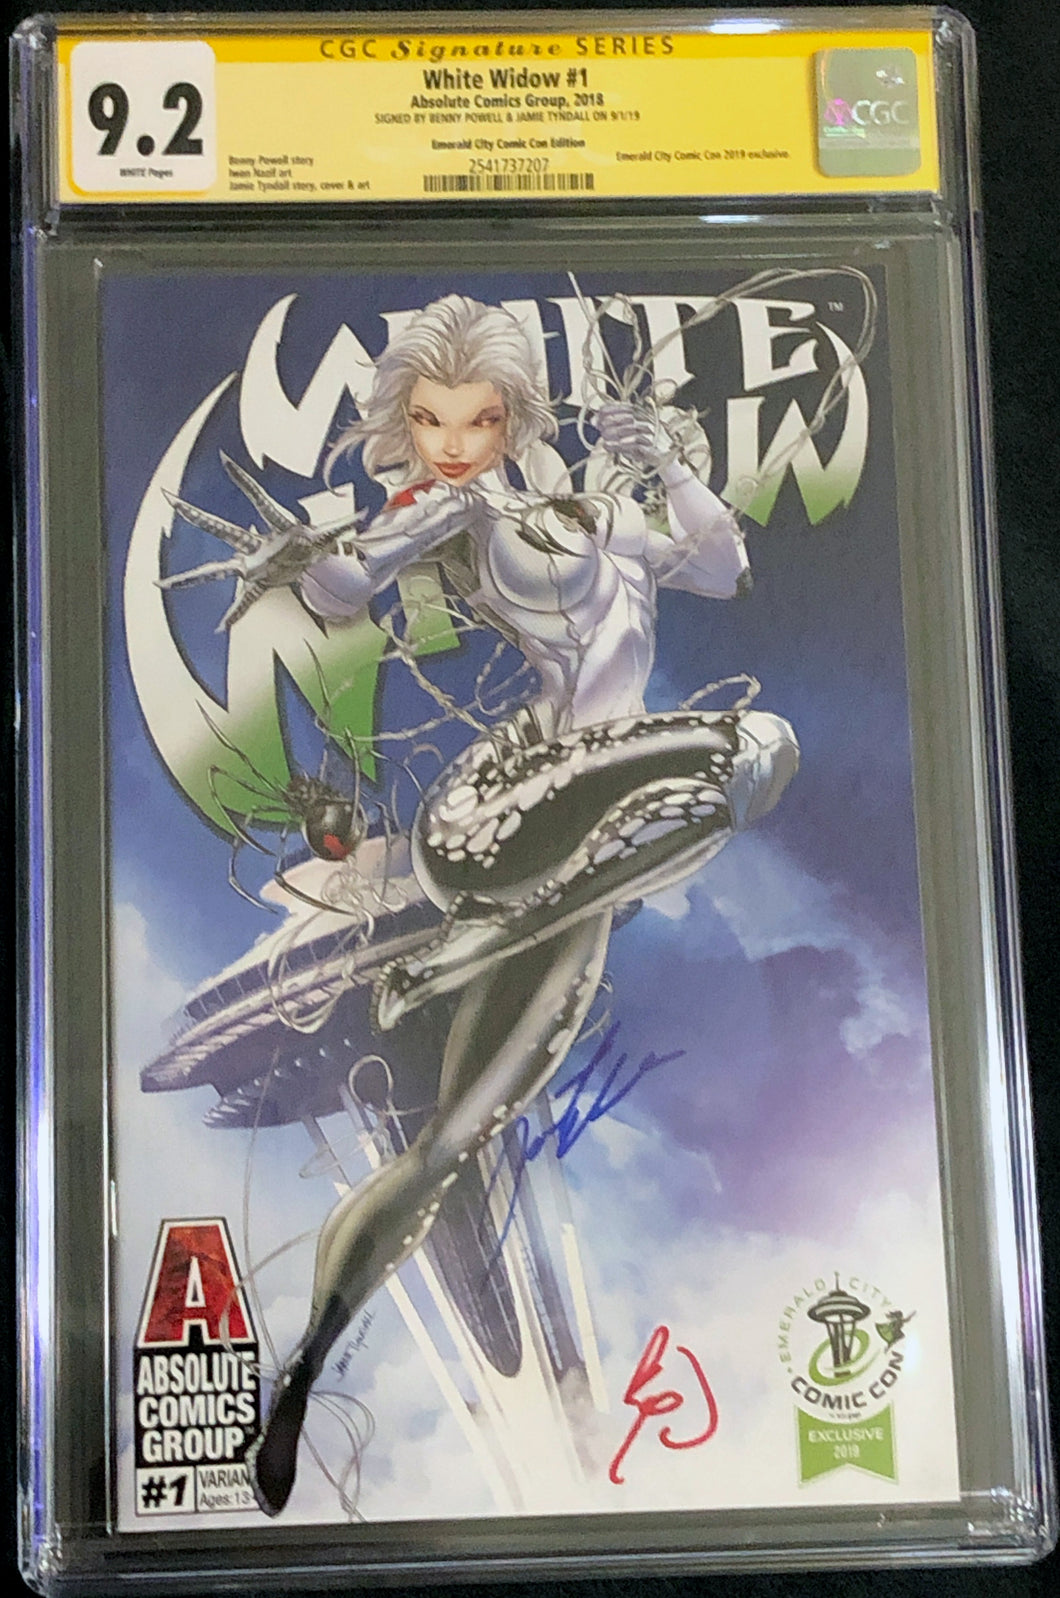 White Widow #1 9.2 CGC Yellow Label - Jamie Tyndall Emerald City Exclusive Signed